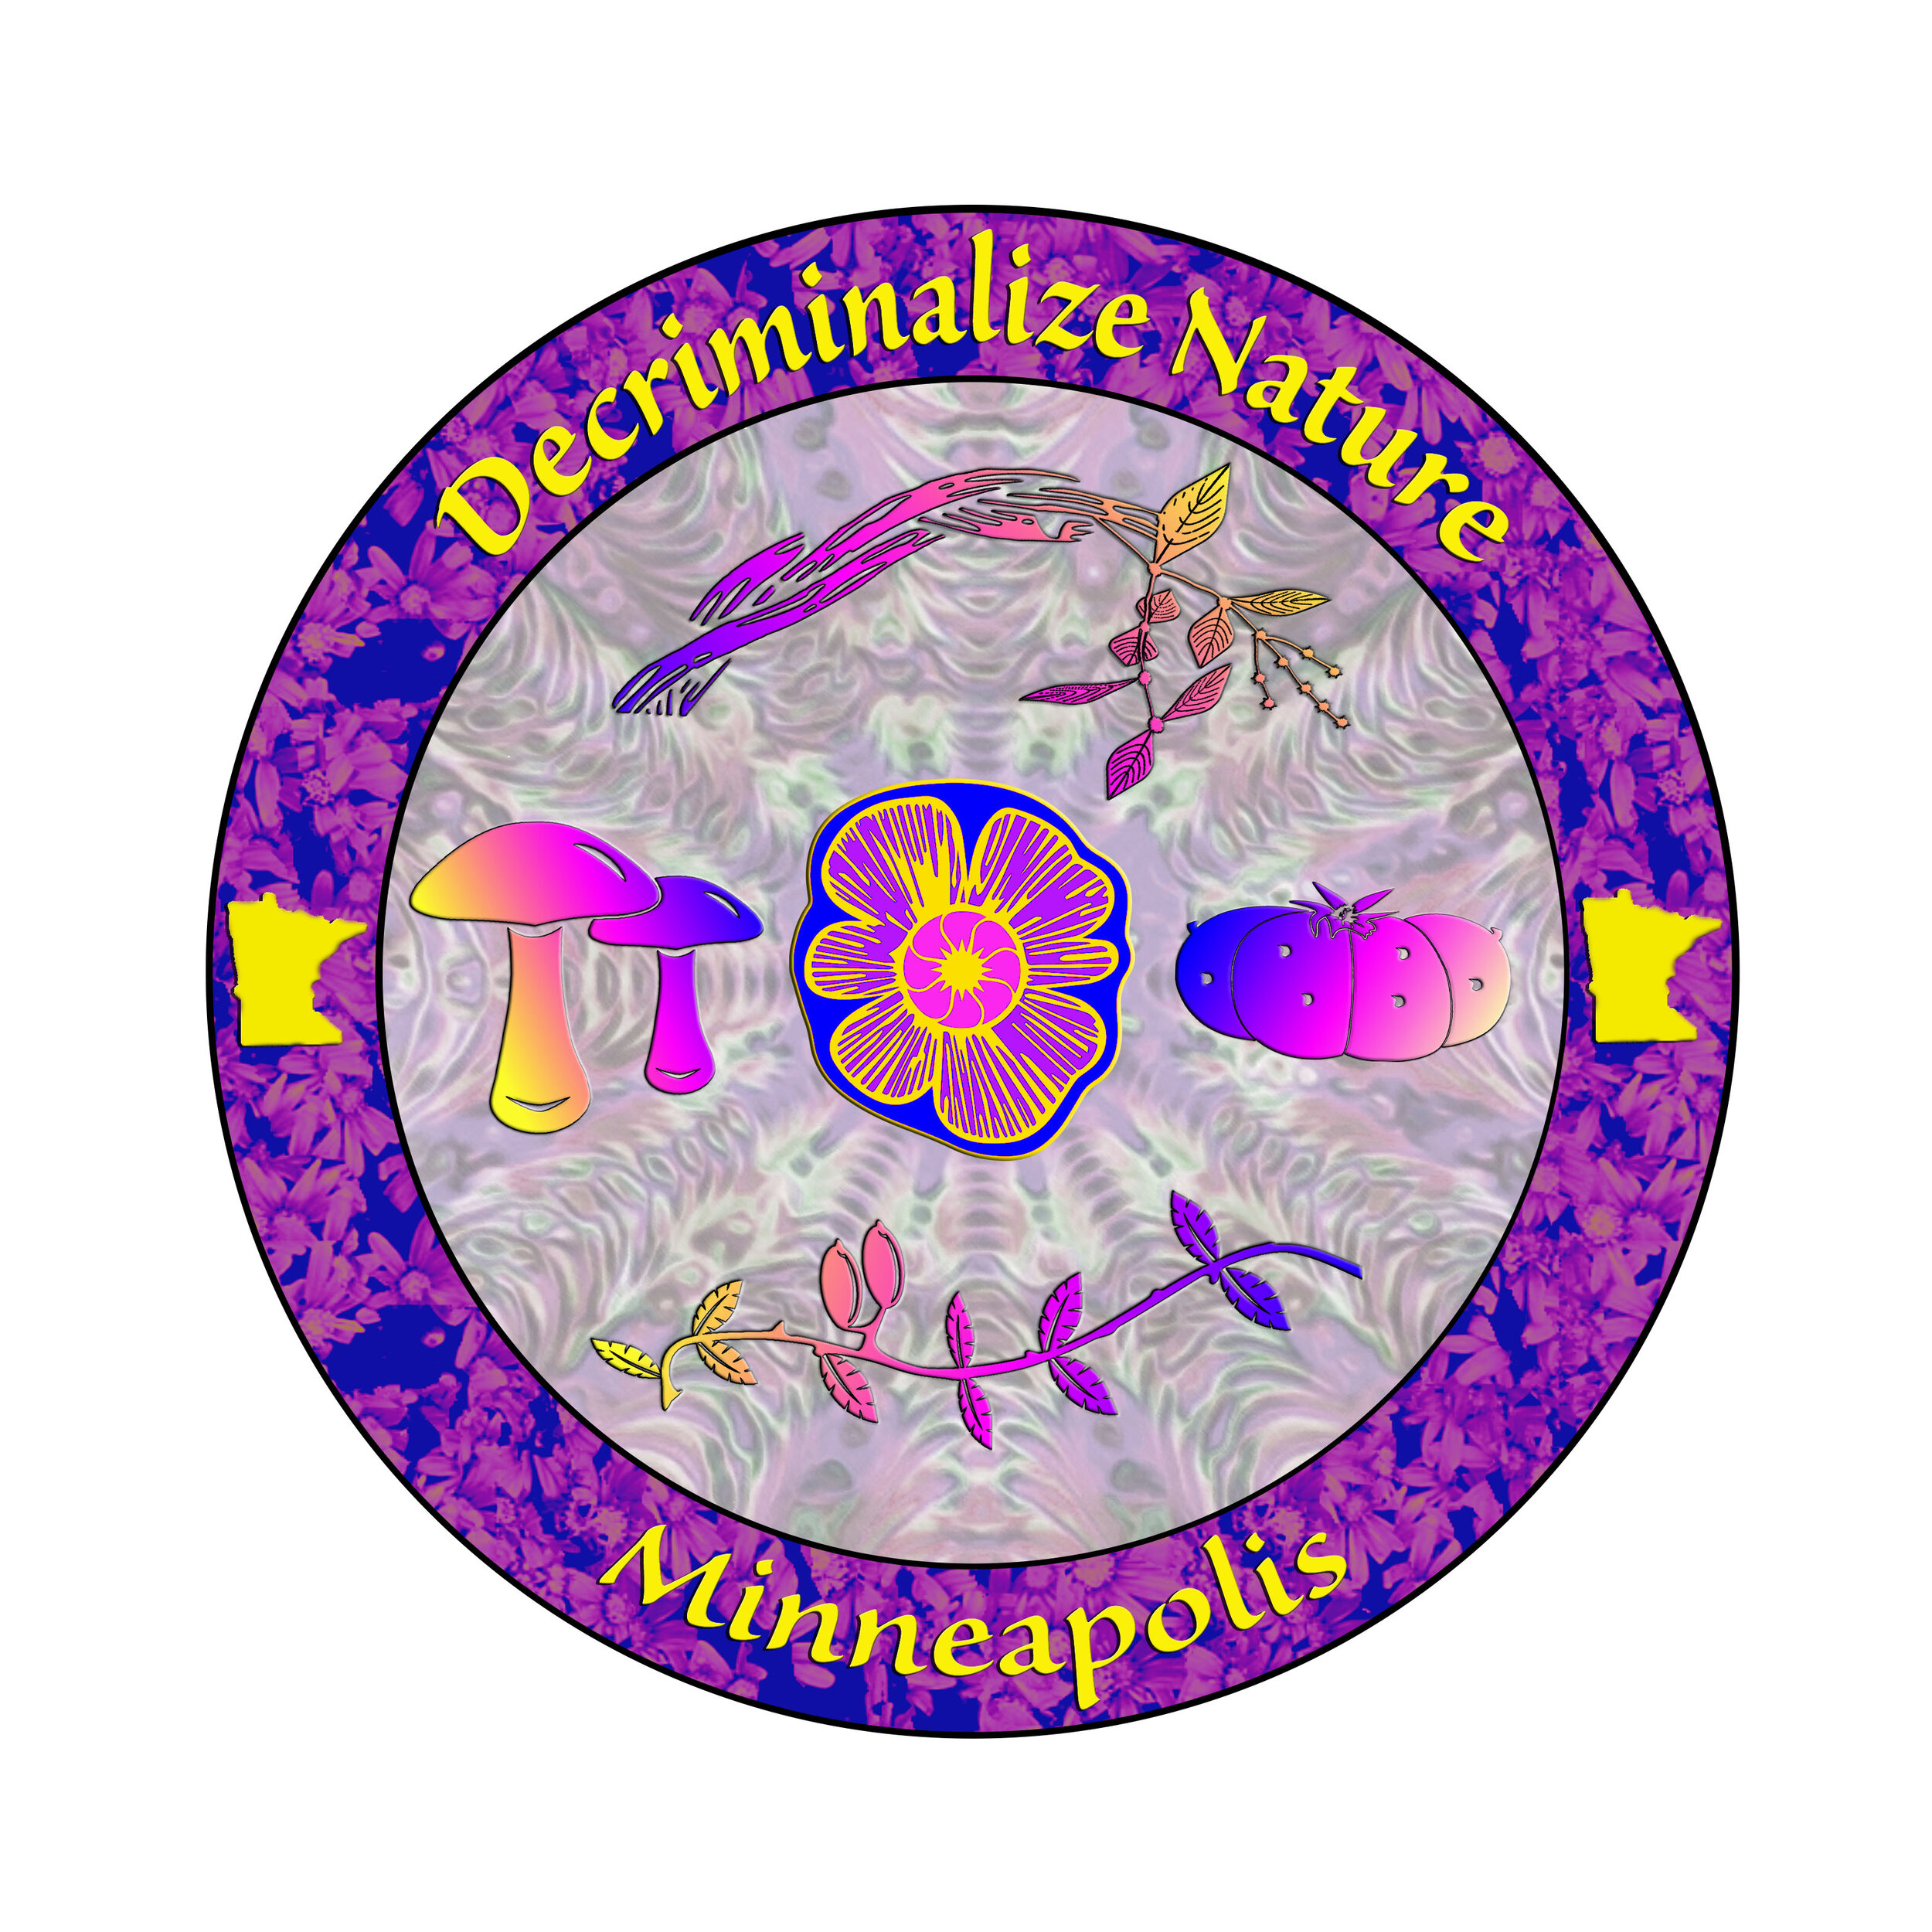 Help us decriminalize psychedelic plants and fungi! - Decriminalize Nature Minneapolis is working to promote the wellness of individuals through the decriminalization of entheogenic plants and fungi. Removing criminal penalties for these healing substances will help improve the physical, mental, and emotional health of our community.